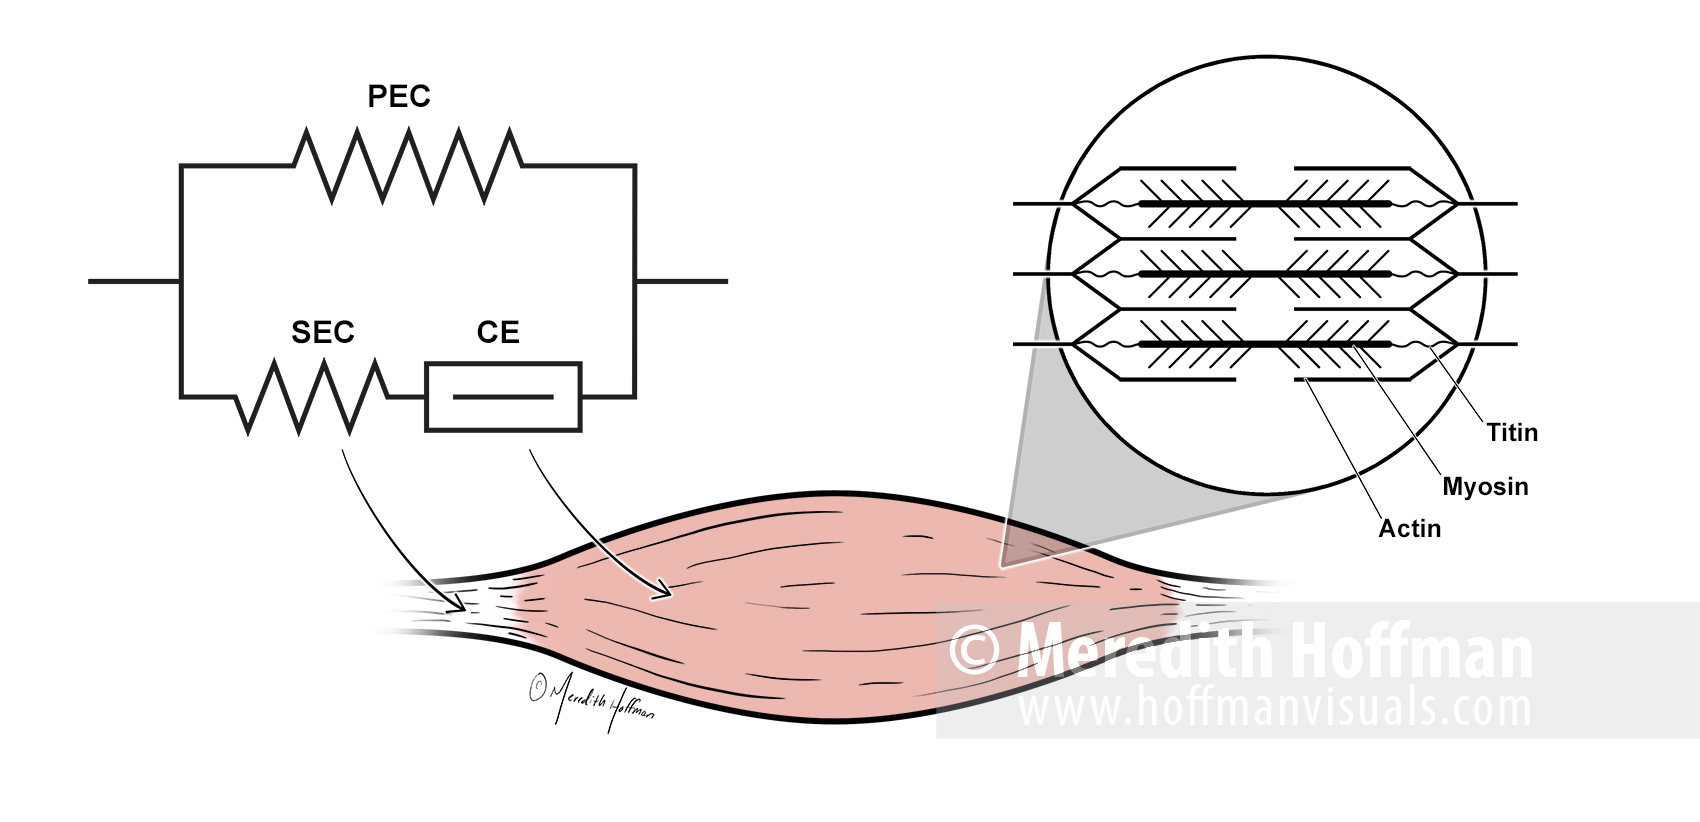 Three component model of force transmission in muscles